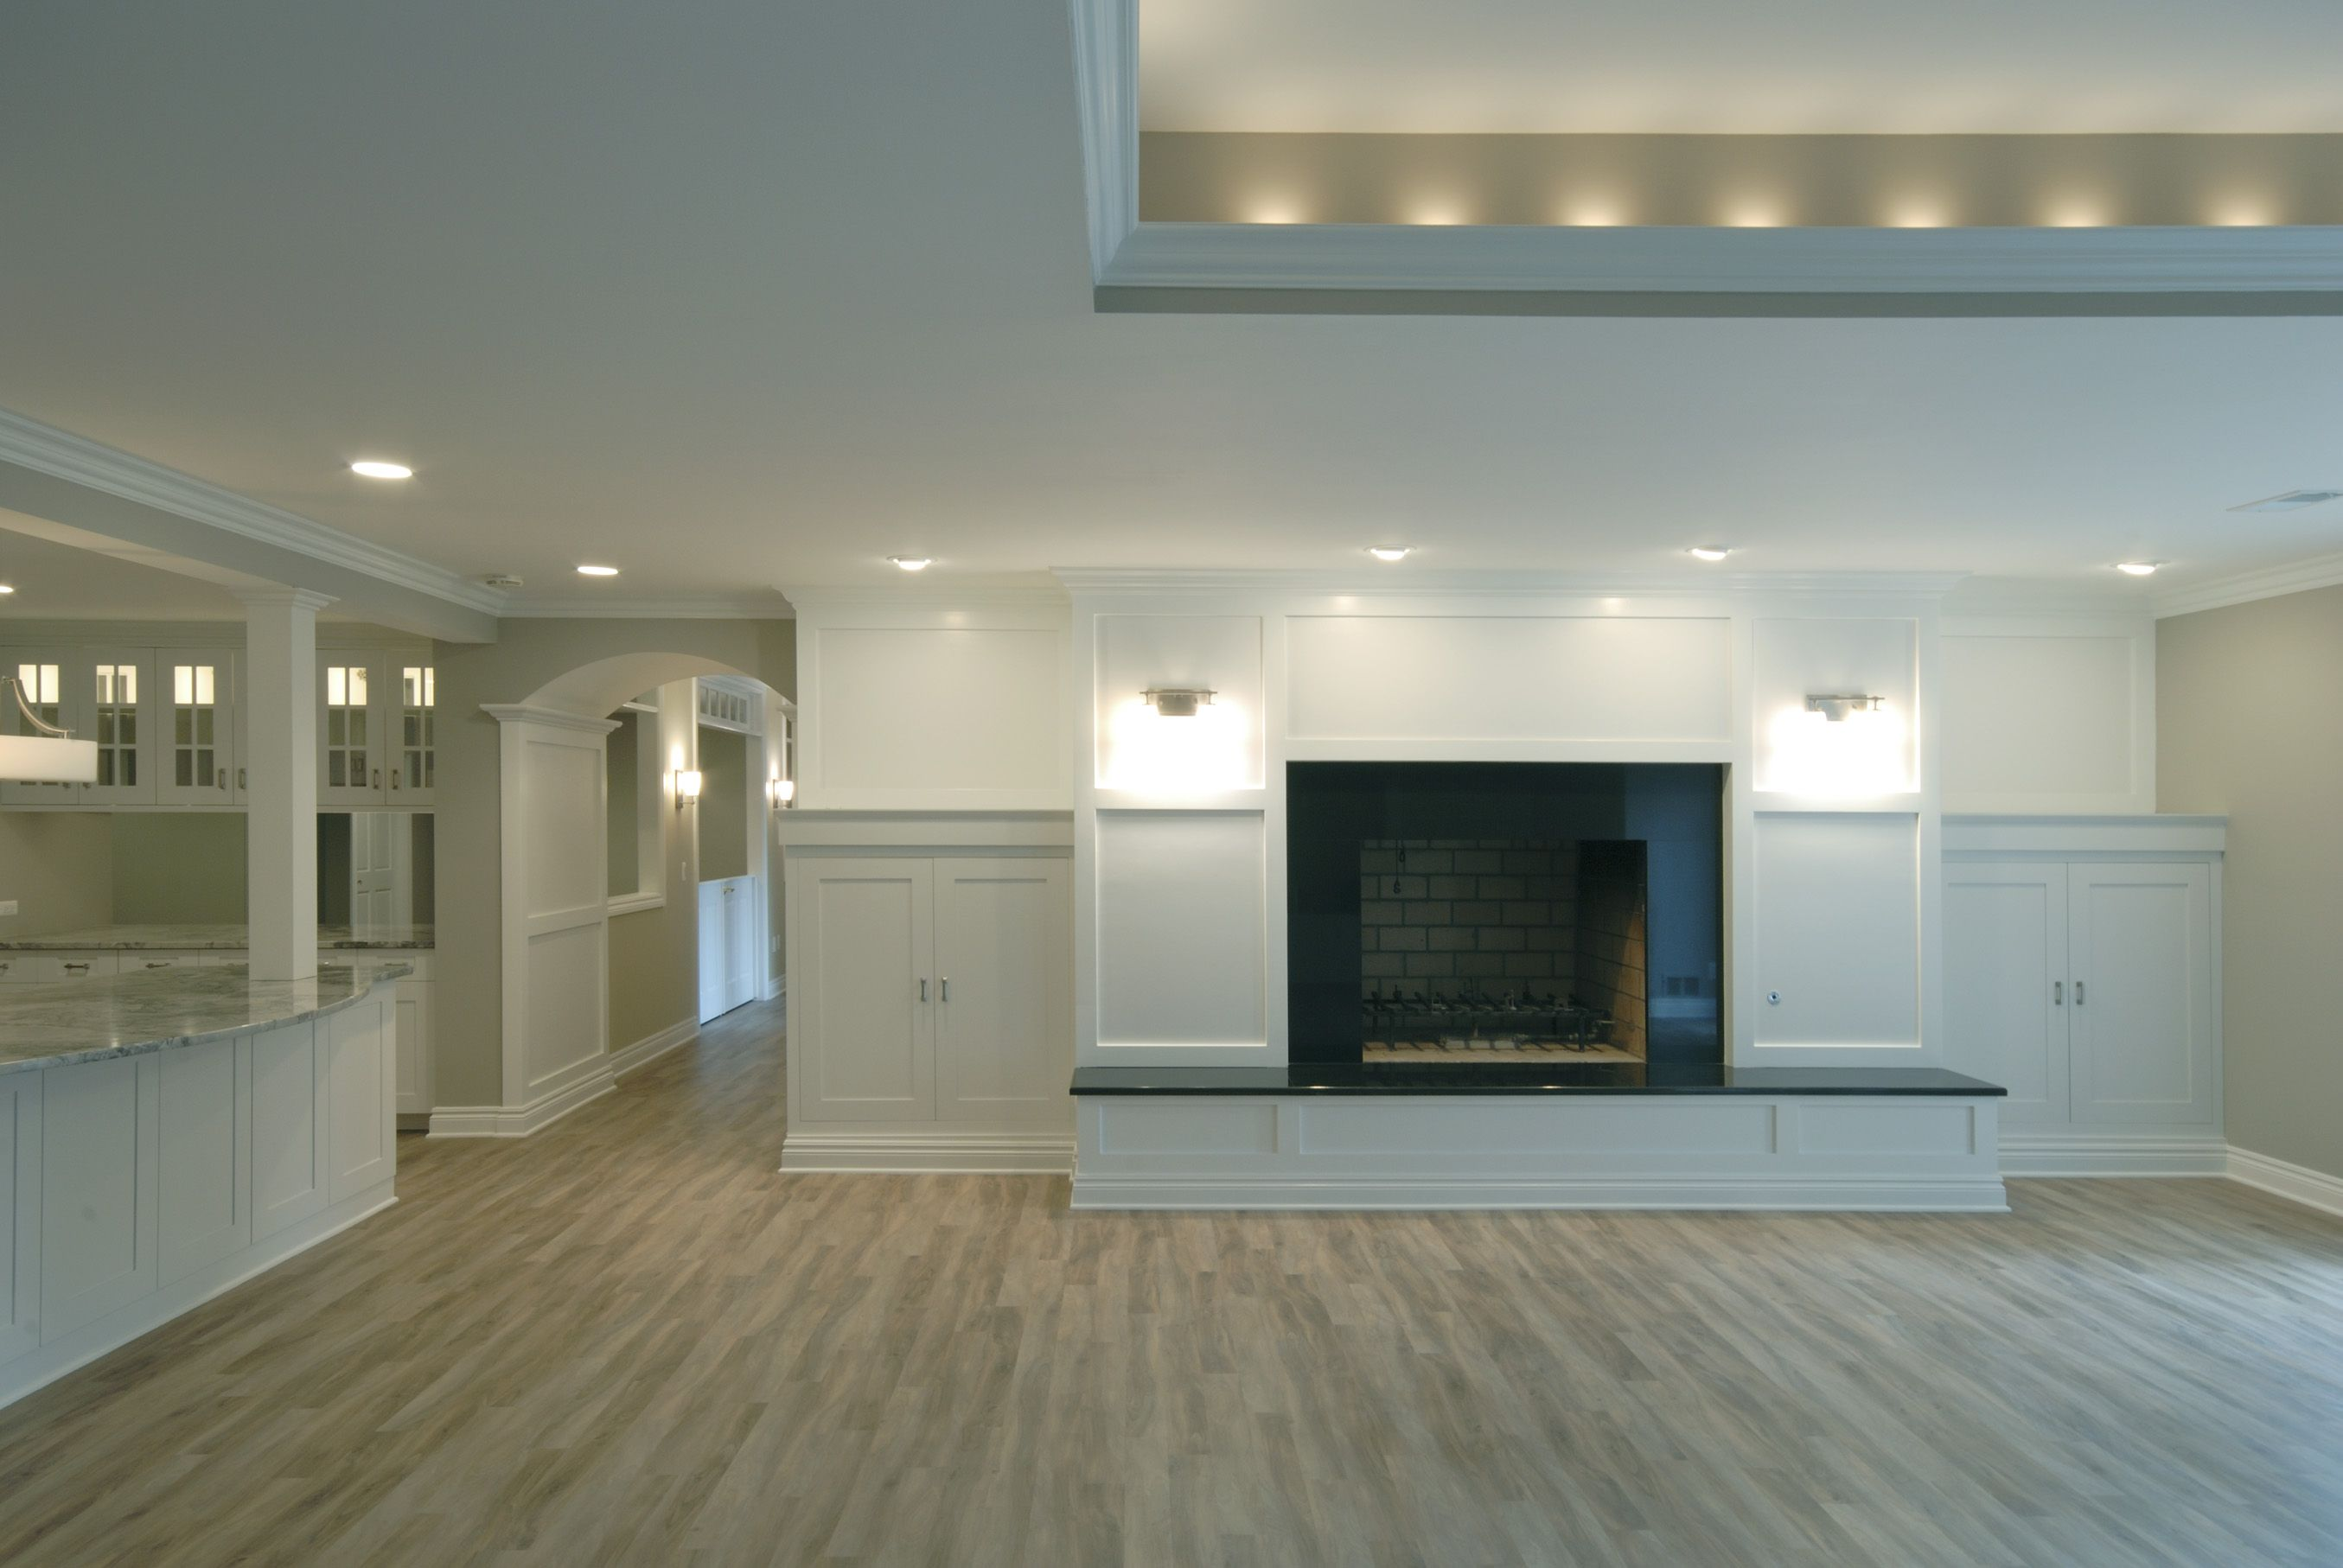 lighting for basements. Beautiful And Bright Basement. Lots Of Recessed Lighting, Middle Part Main Room Ceiling Is Higher. Lighting For Basements